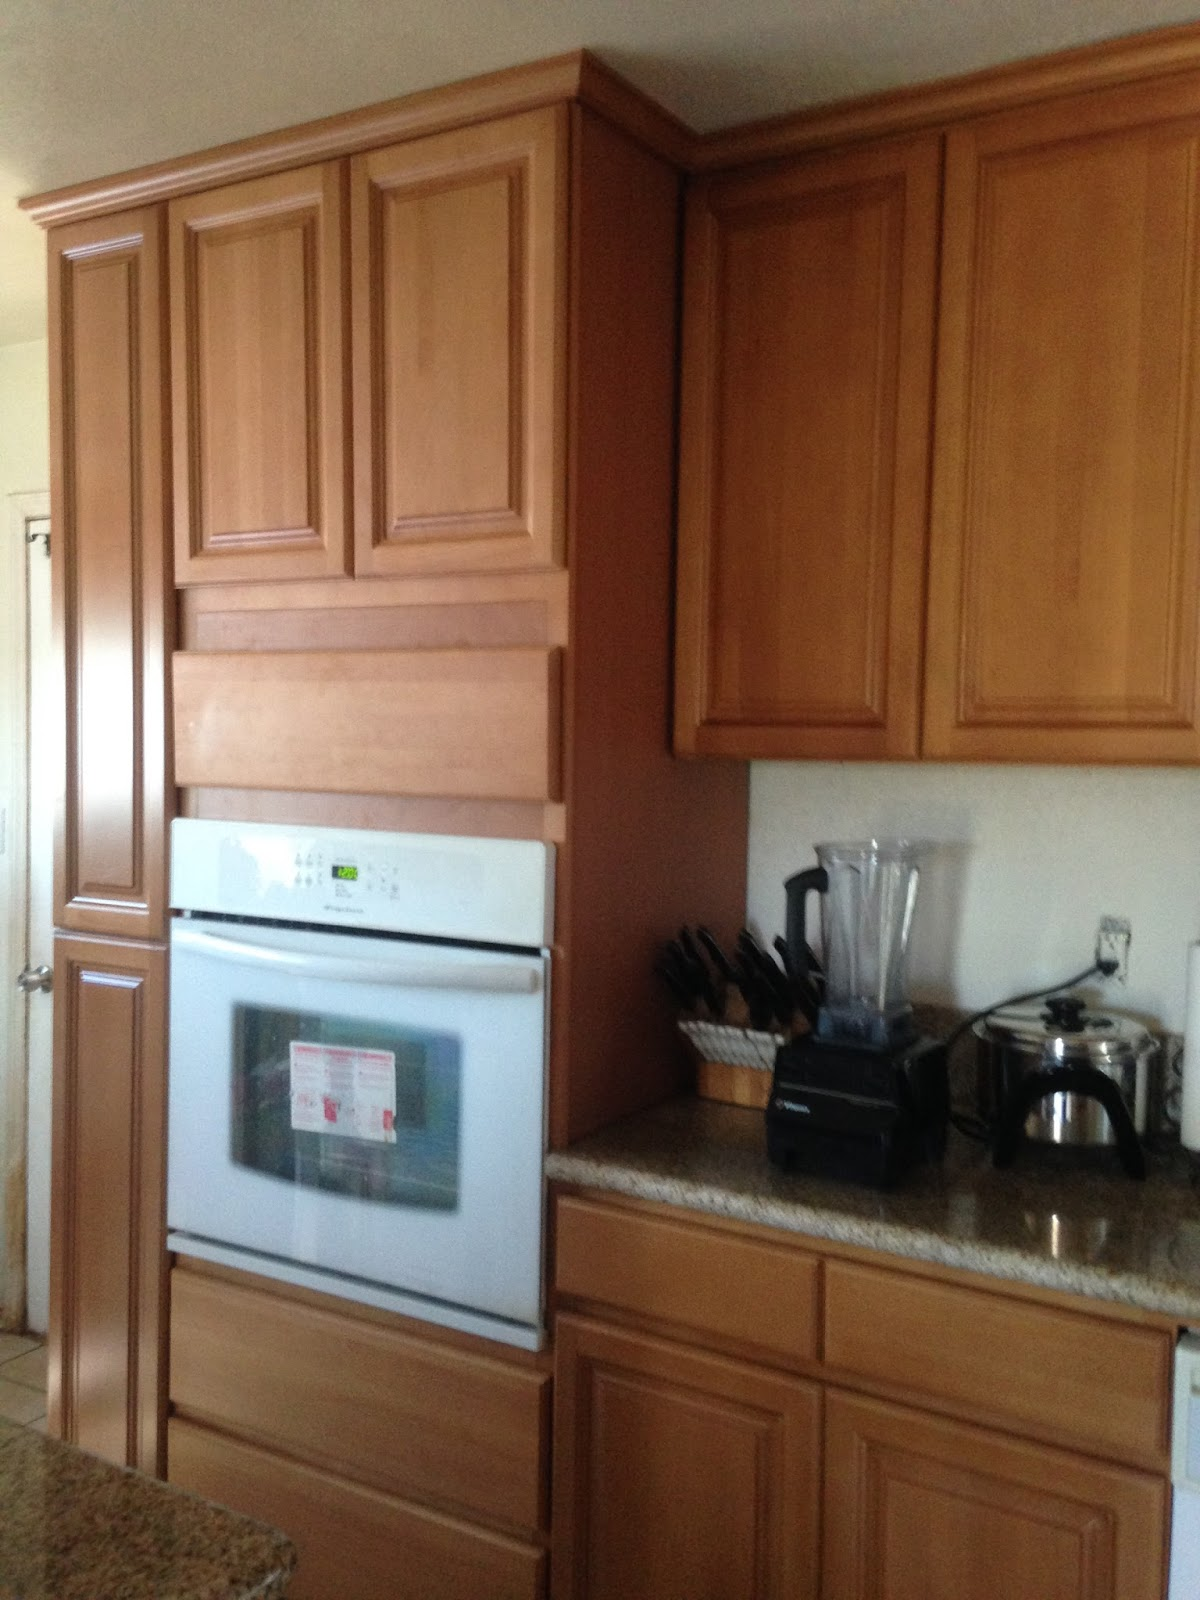 Here Are Some Unassembled Cabinets Unassembled Cabinets Have A Few